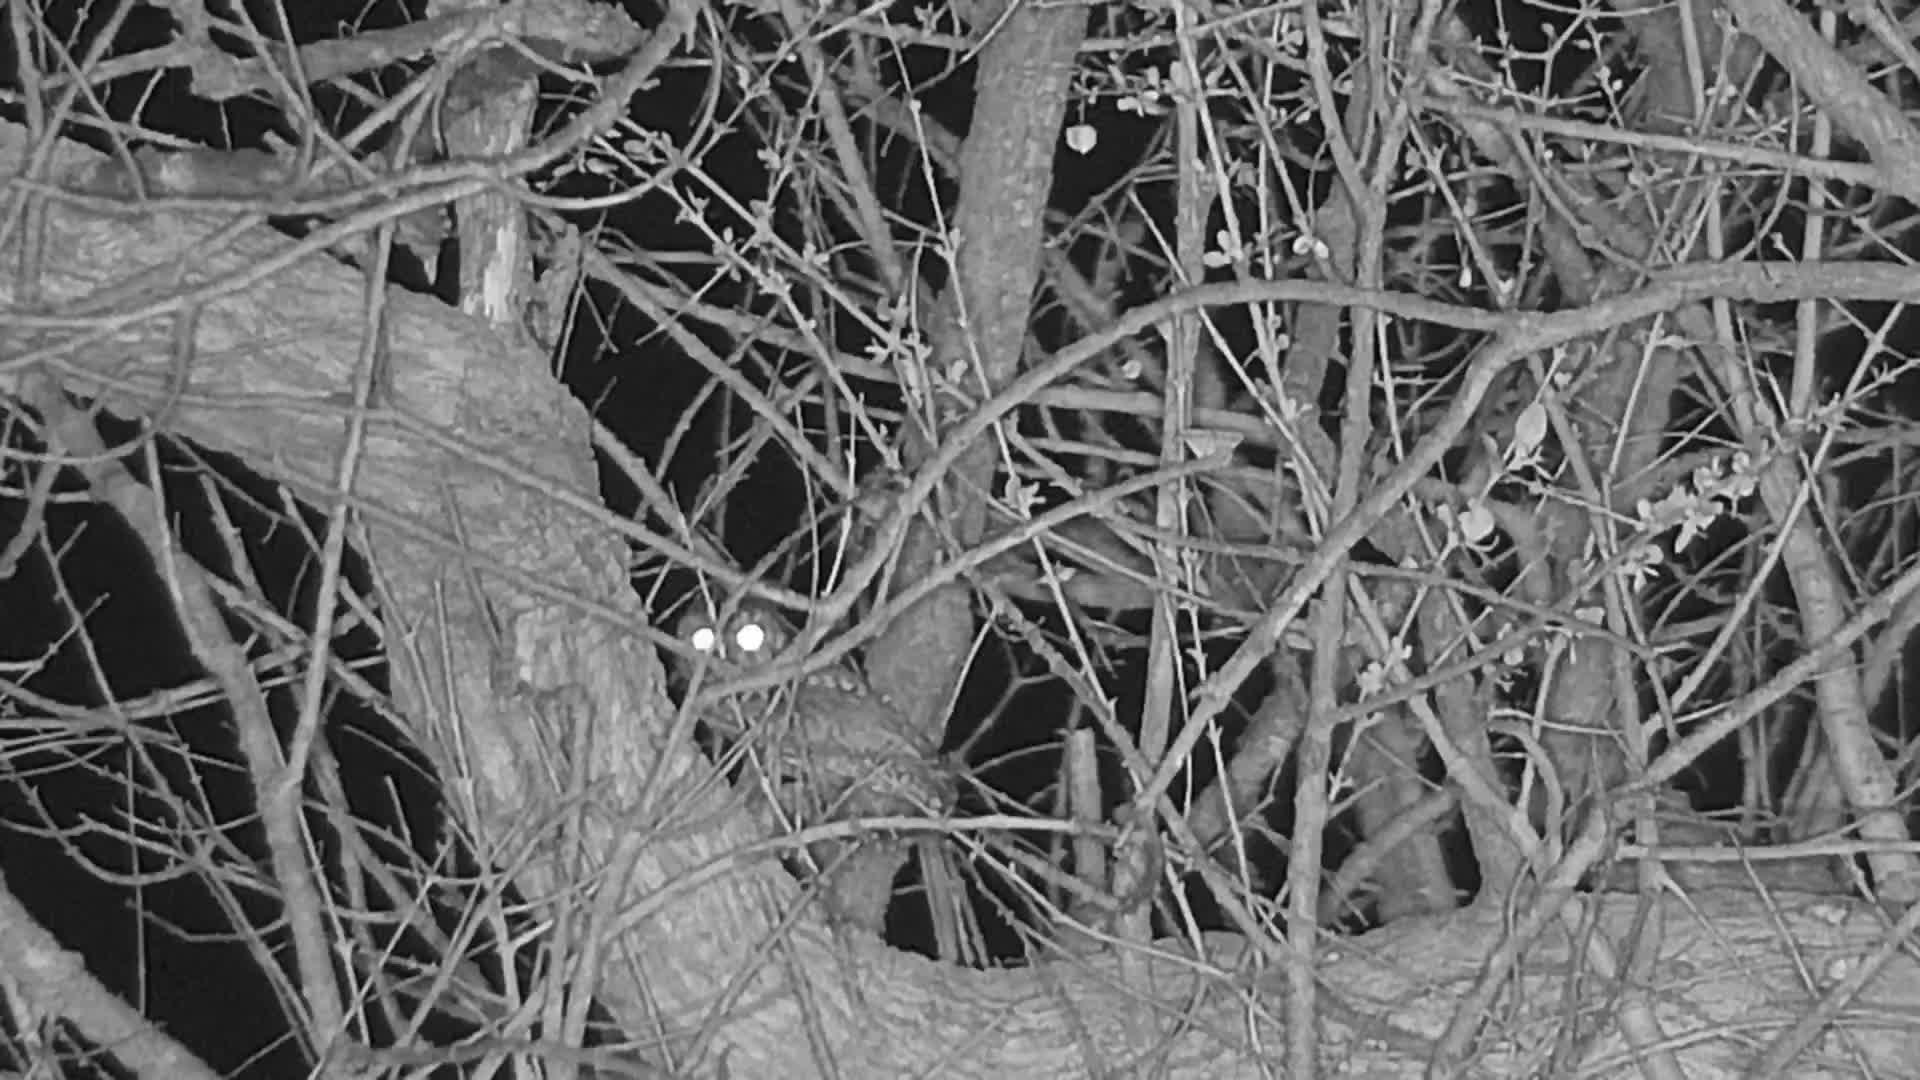 VIDEO: Scops Owl in tree and calling